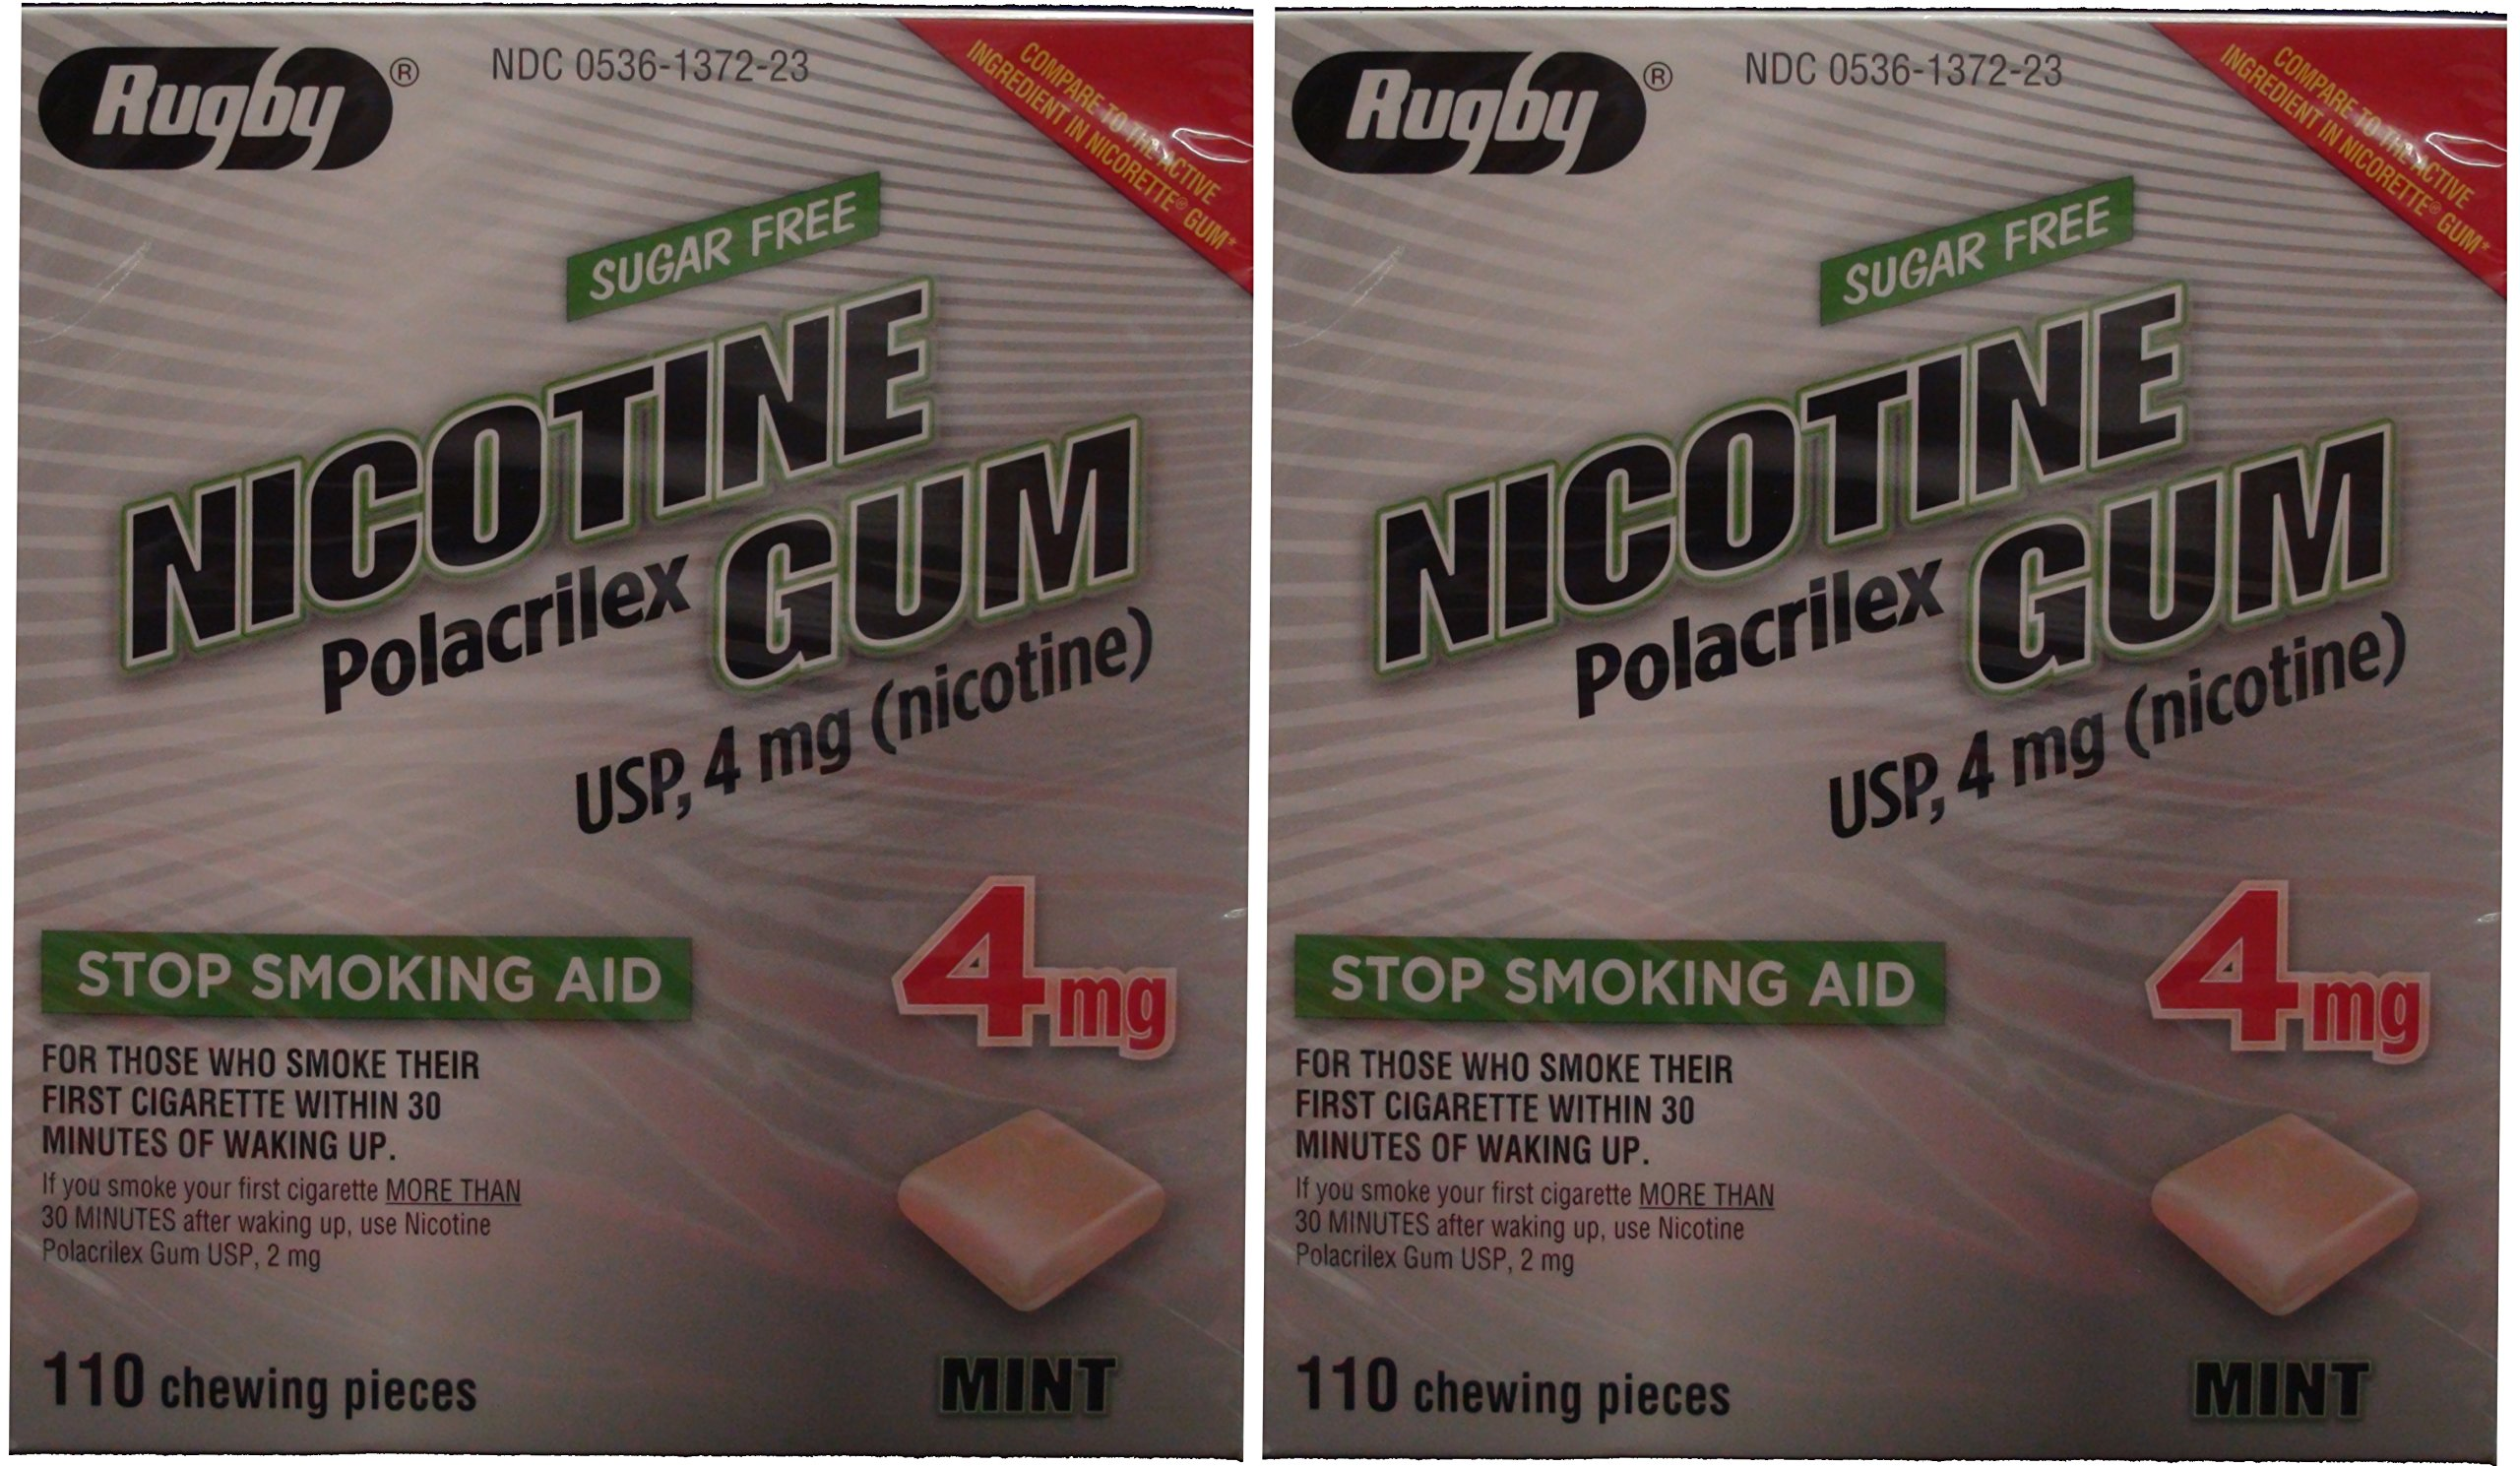 Nicotine Gum 4mg Sugar Free Mint Generic for Nicorette 110 Pieces per Box Pack of 2 Total 220 Pieces